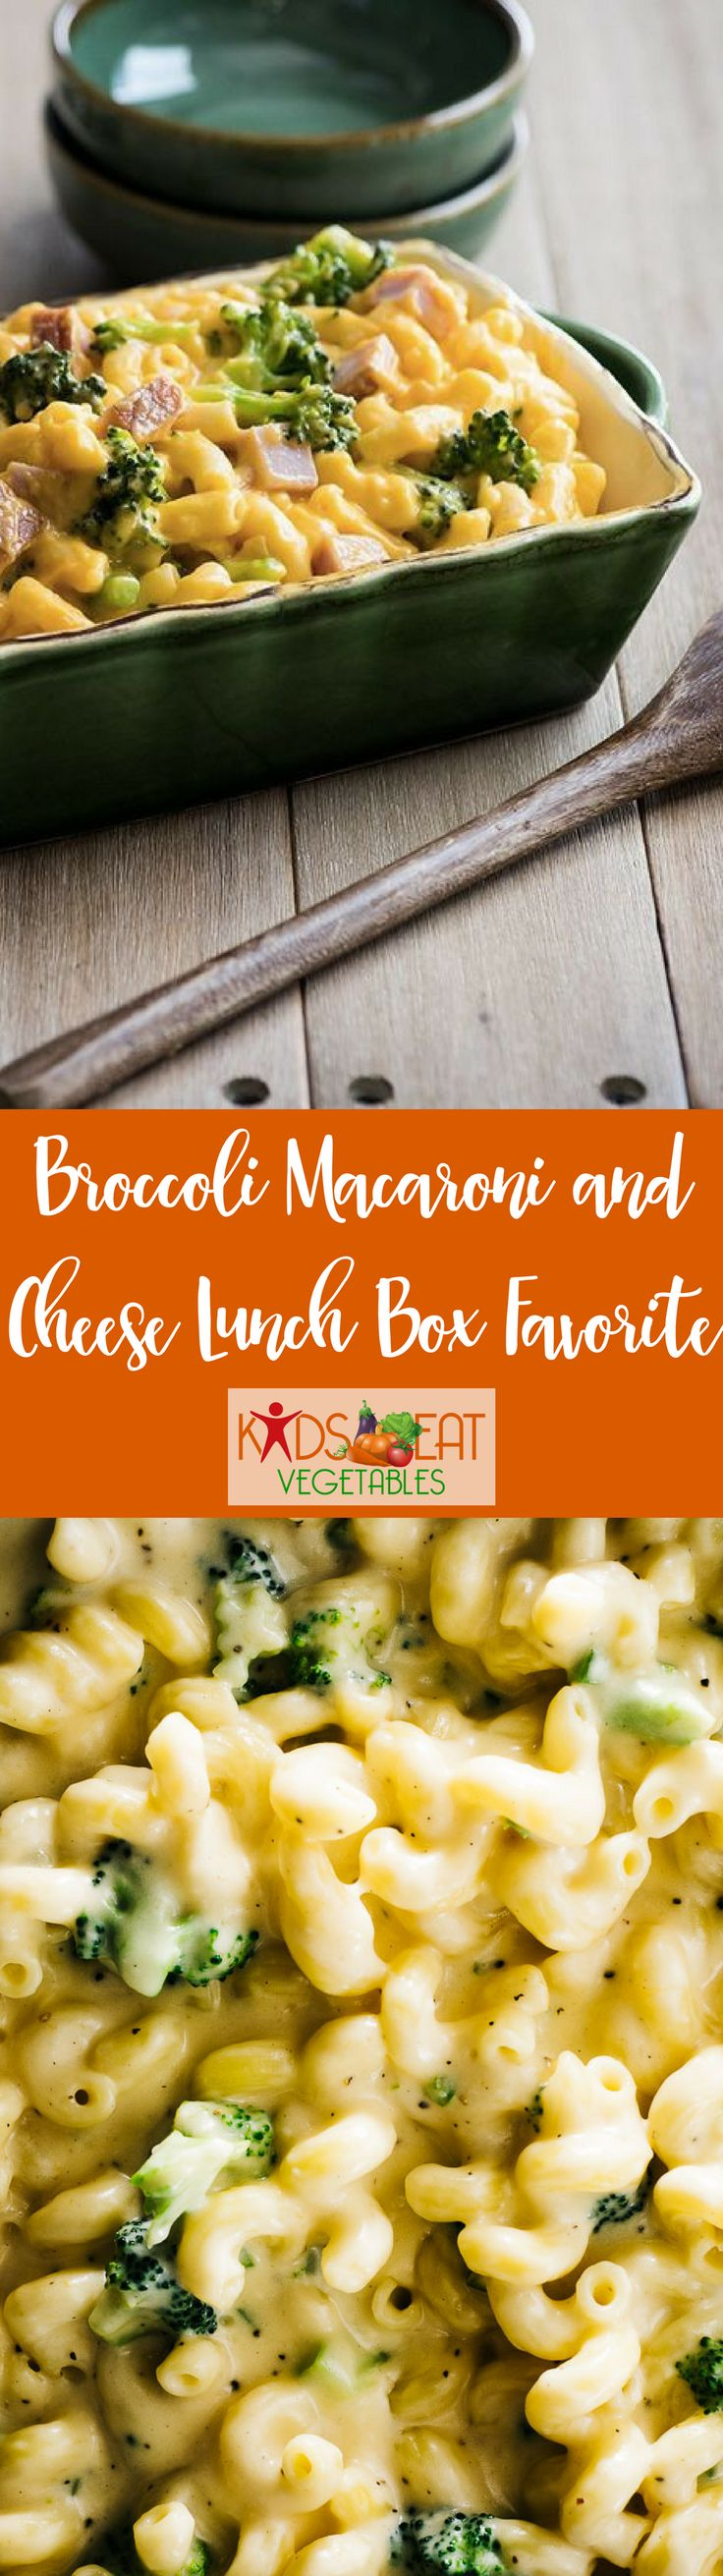 A healthy lunch is so important and this recipe for Broccoli Macaroni and Cheese is sure to be a lunch box favorite. Healthy and easy! Here is the perfect thermos to pack this lunch box favorite. Combine with a fruit, carrot sticks, a small treat and water to make healthy balanced meal. This recipe can be made ahead or the morning of, and by simply changing the ingredient from broccoli to peas or chicken, you can turn this basic recipes into endless lunch options!